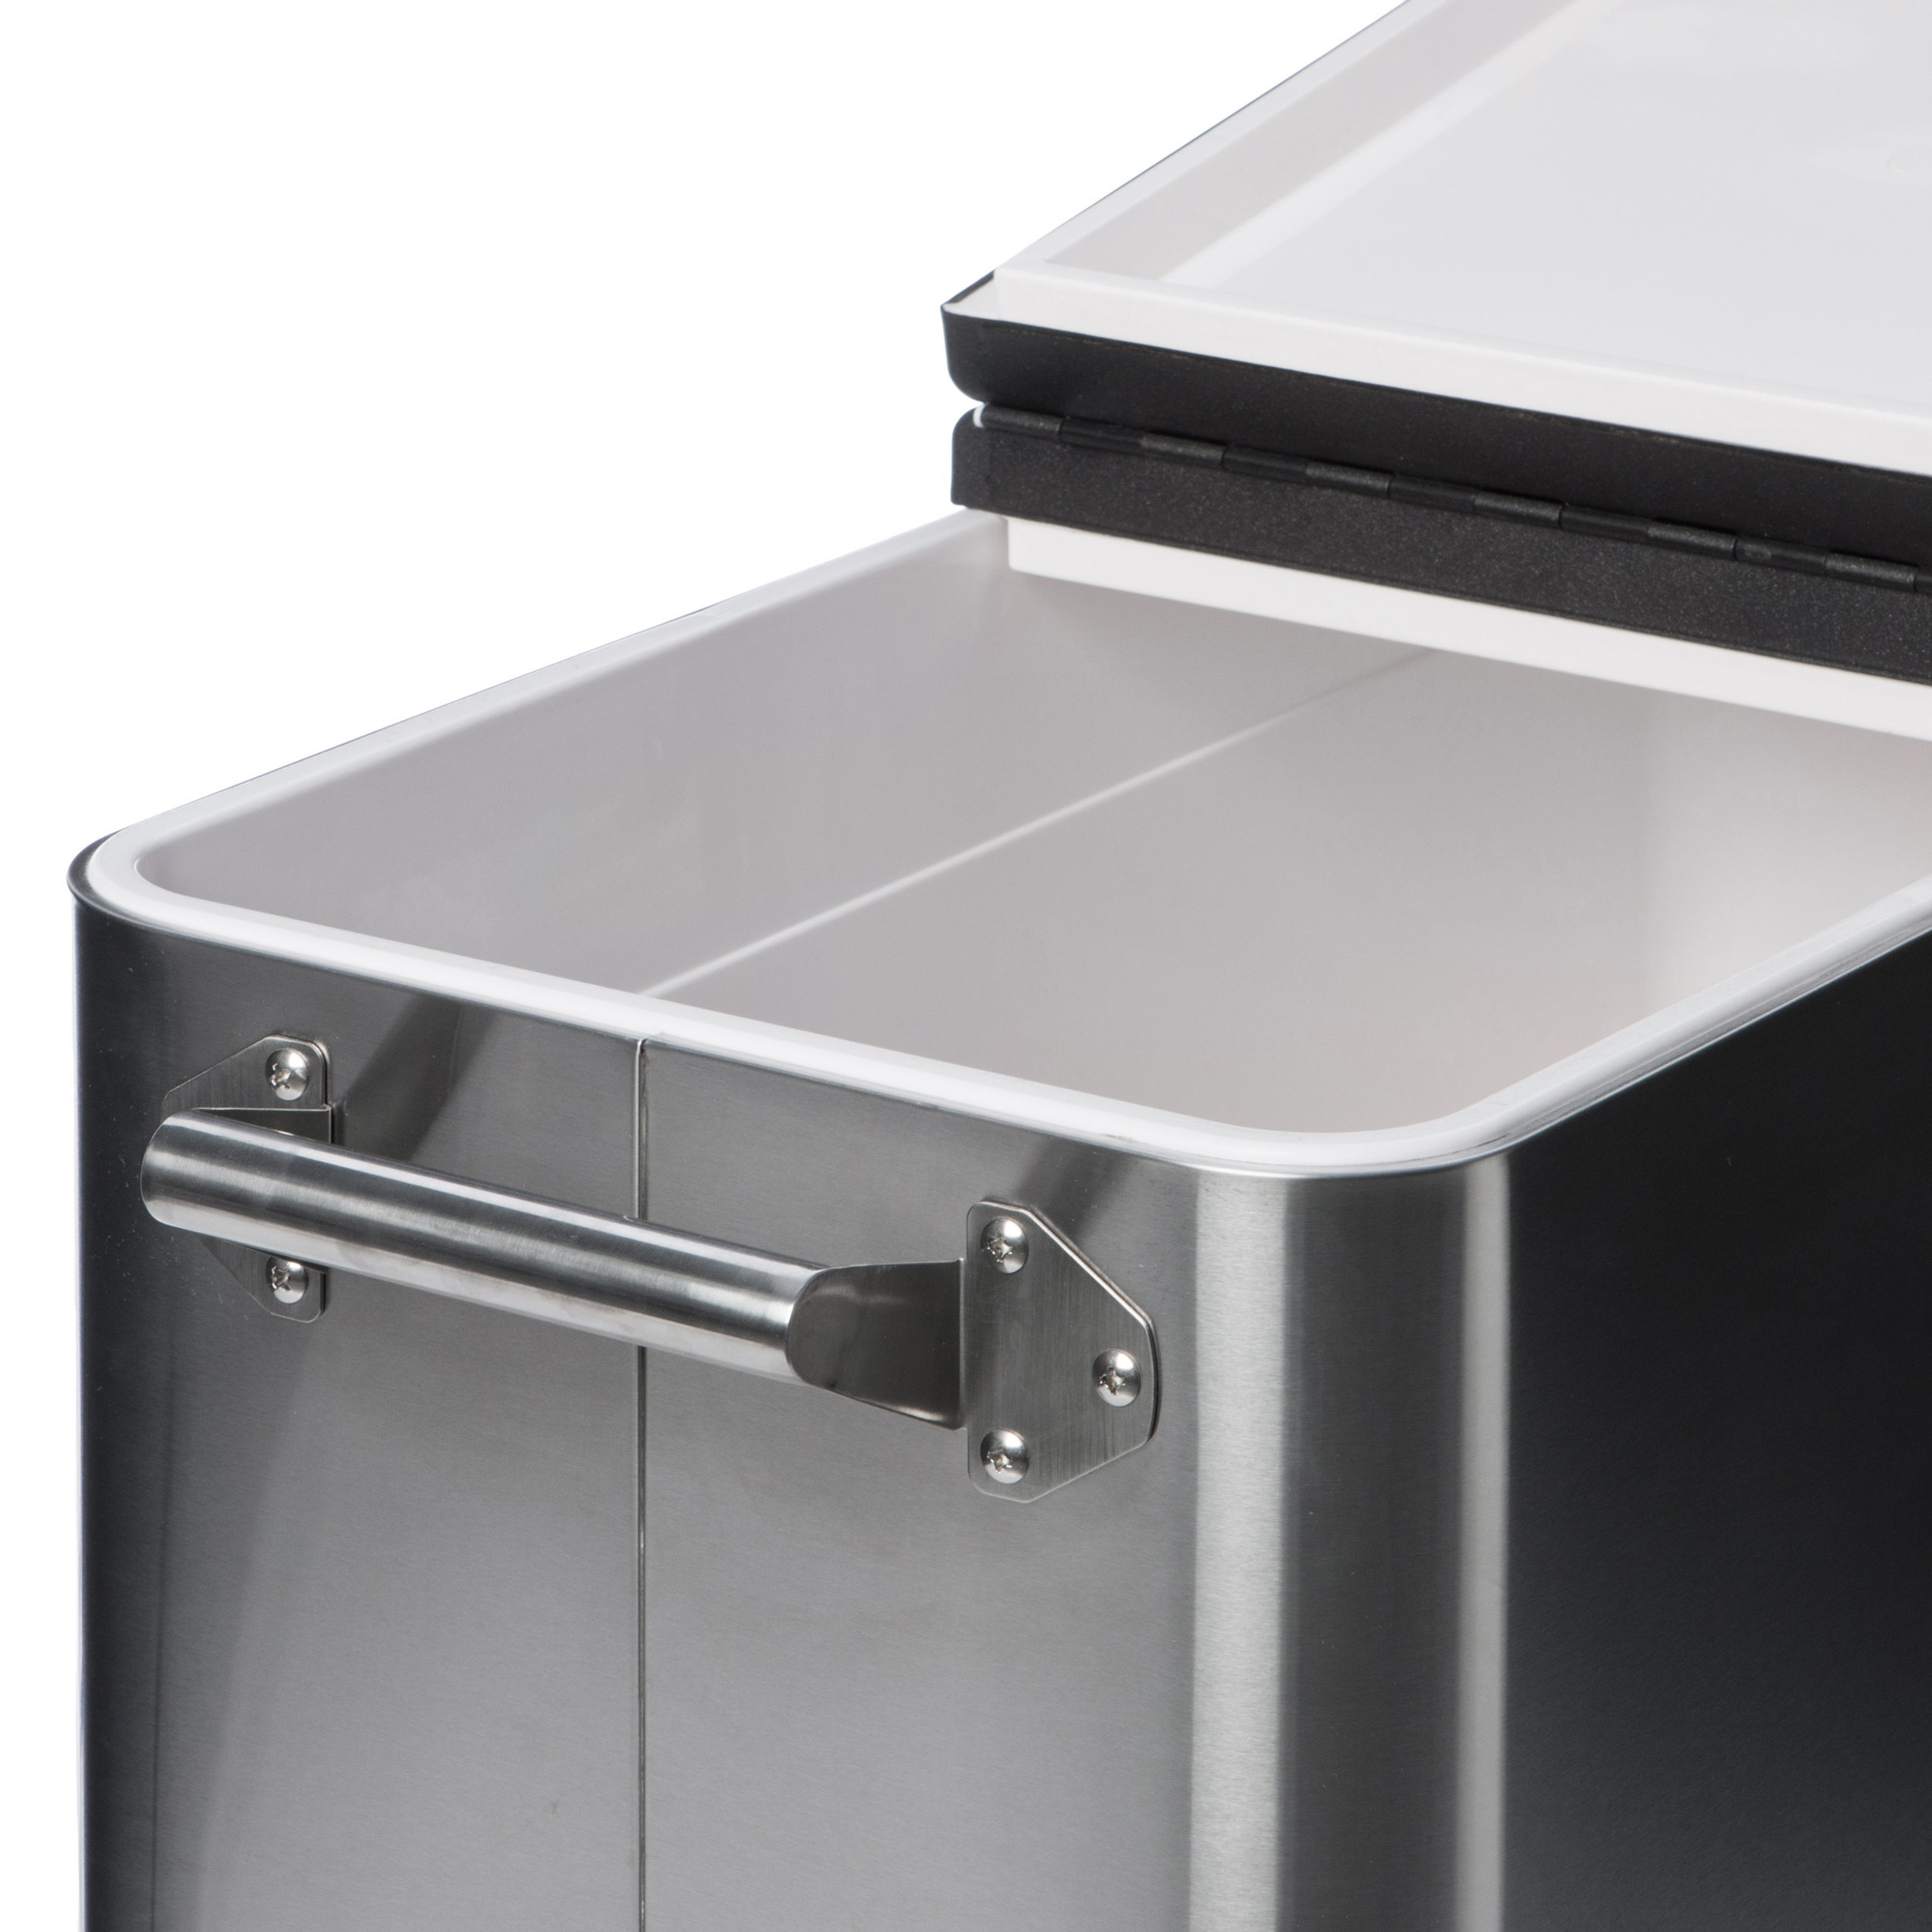 Trinity Stainless Steel Cooler With Shelf Free Shipping Today 7638015